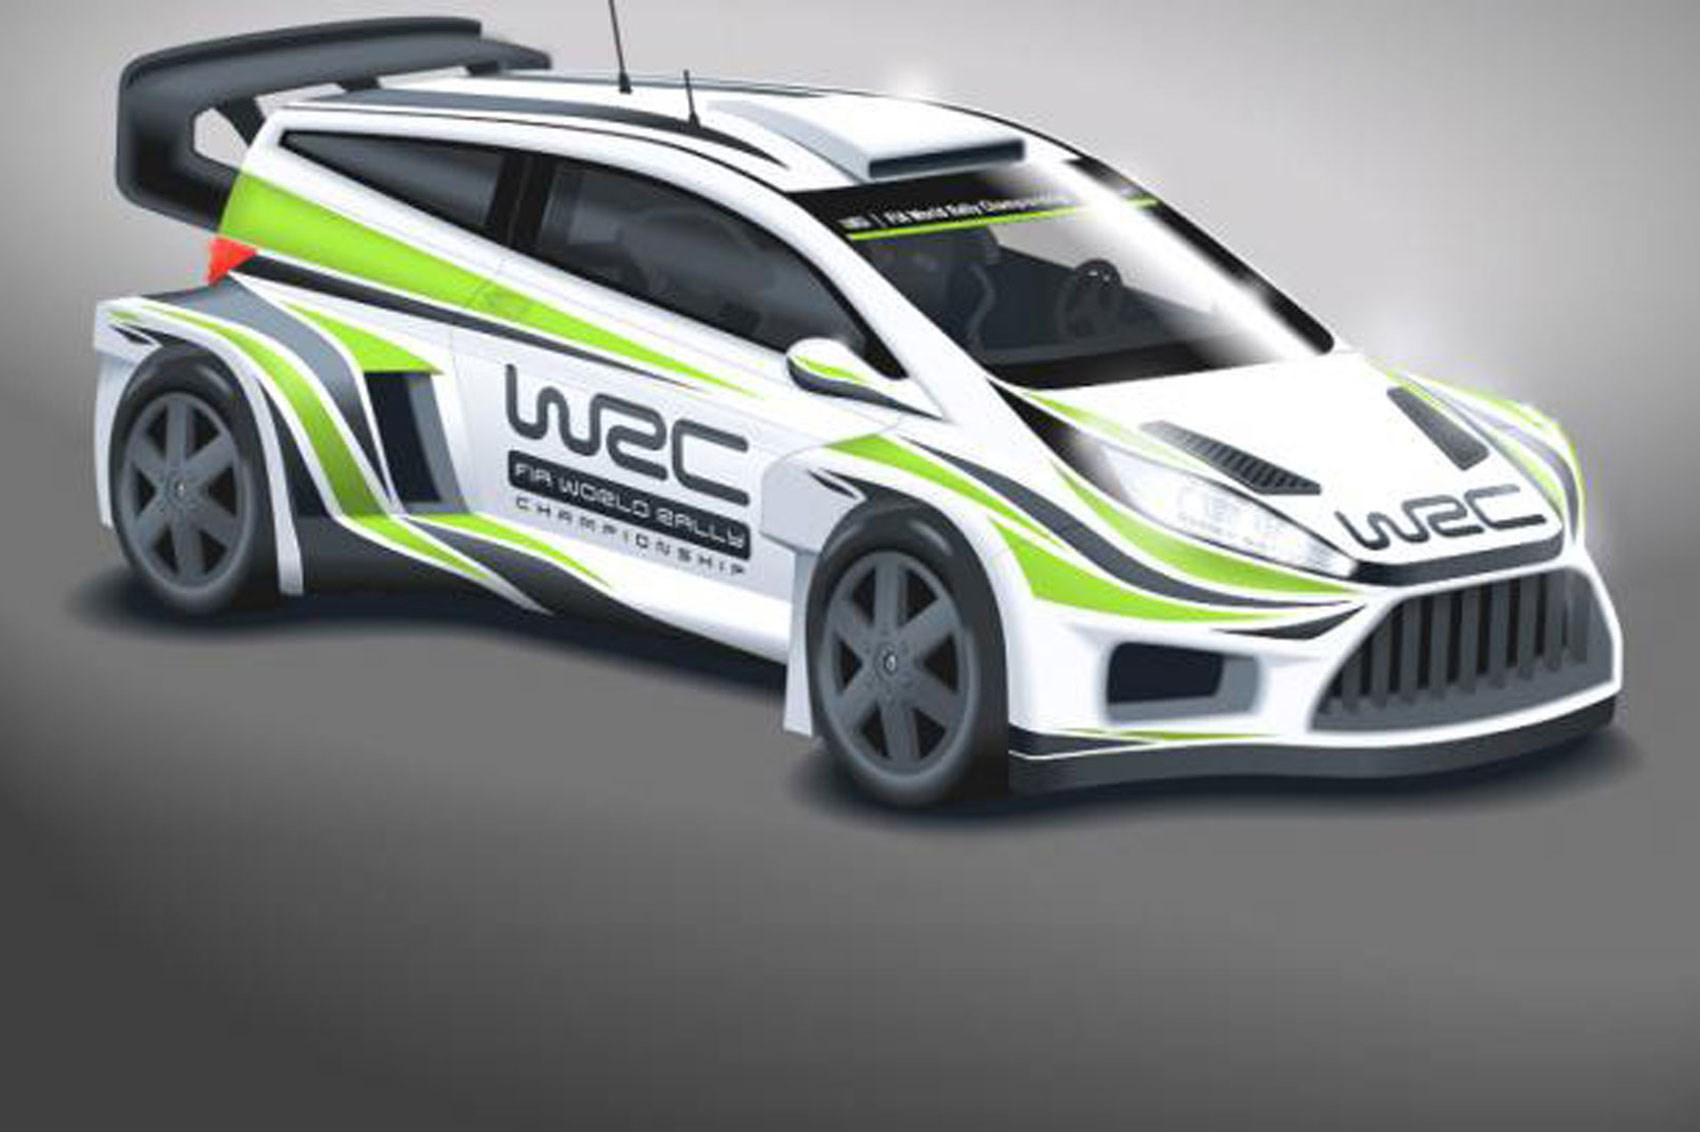 Ultrablogus  Stunning Wild New Look For Wrc Cars In  By Car Magazine With Engaging Wrc Cars Will Get Wider Bodies Bigger Wings And More Power For  With Enchanting Hyundai Santa Fe  Interior Also Honda Accord  Interior In Addition Jeep Compass Interior Dimensions And Toyota Corolla Ae Interior As Well As Opel Astra Gtc Interior Additionally  Mitsubishi Lancer Interior From Carmagazinecouk With Ultrablogus  Engaging Wild New Look For Wrc Cars In  By Car Magazine With Enchanting Wrc Cars Will Get Wider Bodies Bigger Wings And More Power For  And Stunning Hyundai Santa Fe  Interior Also Honda Accord  Interior In Addition Jeep Compass Interior Dimensions From Carmagazinecouk